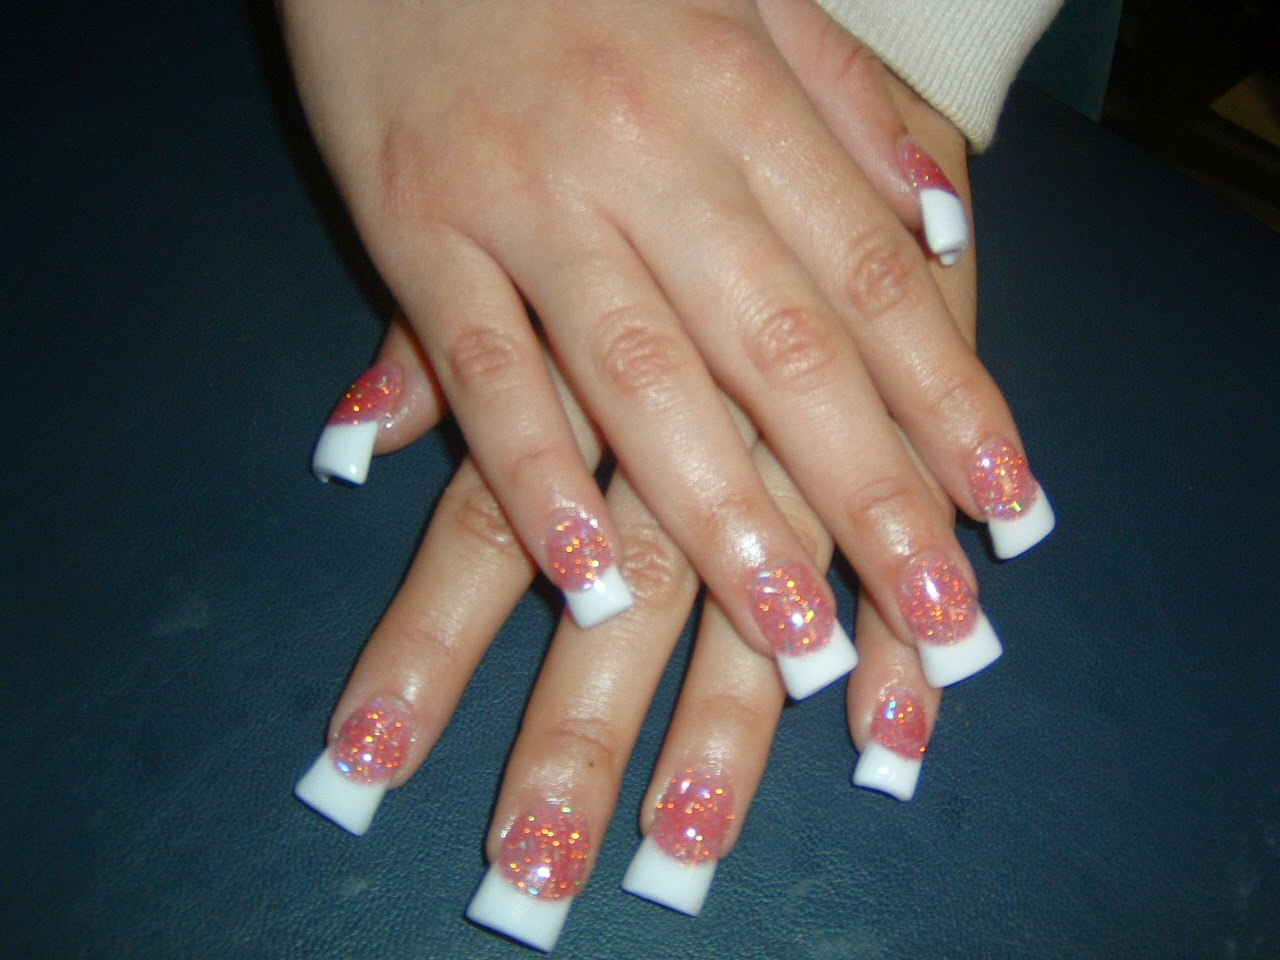 French tip acrylic nail designs nail art and tattoo design ideas french tip acrylic nail designs prinsesfo Image collections